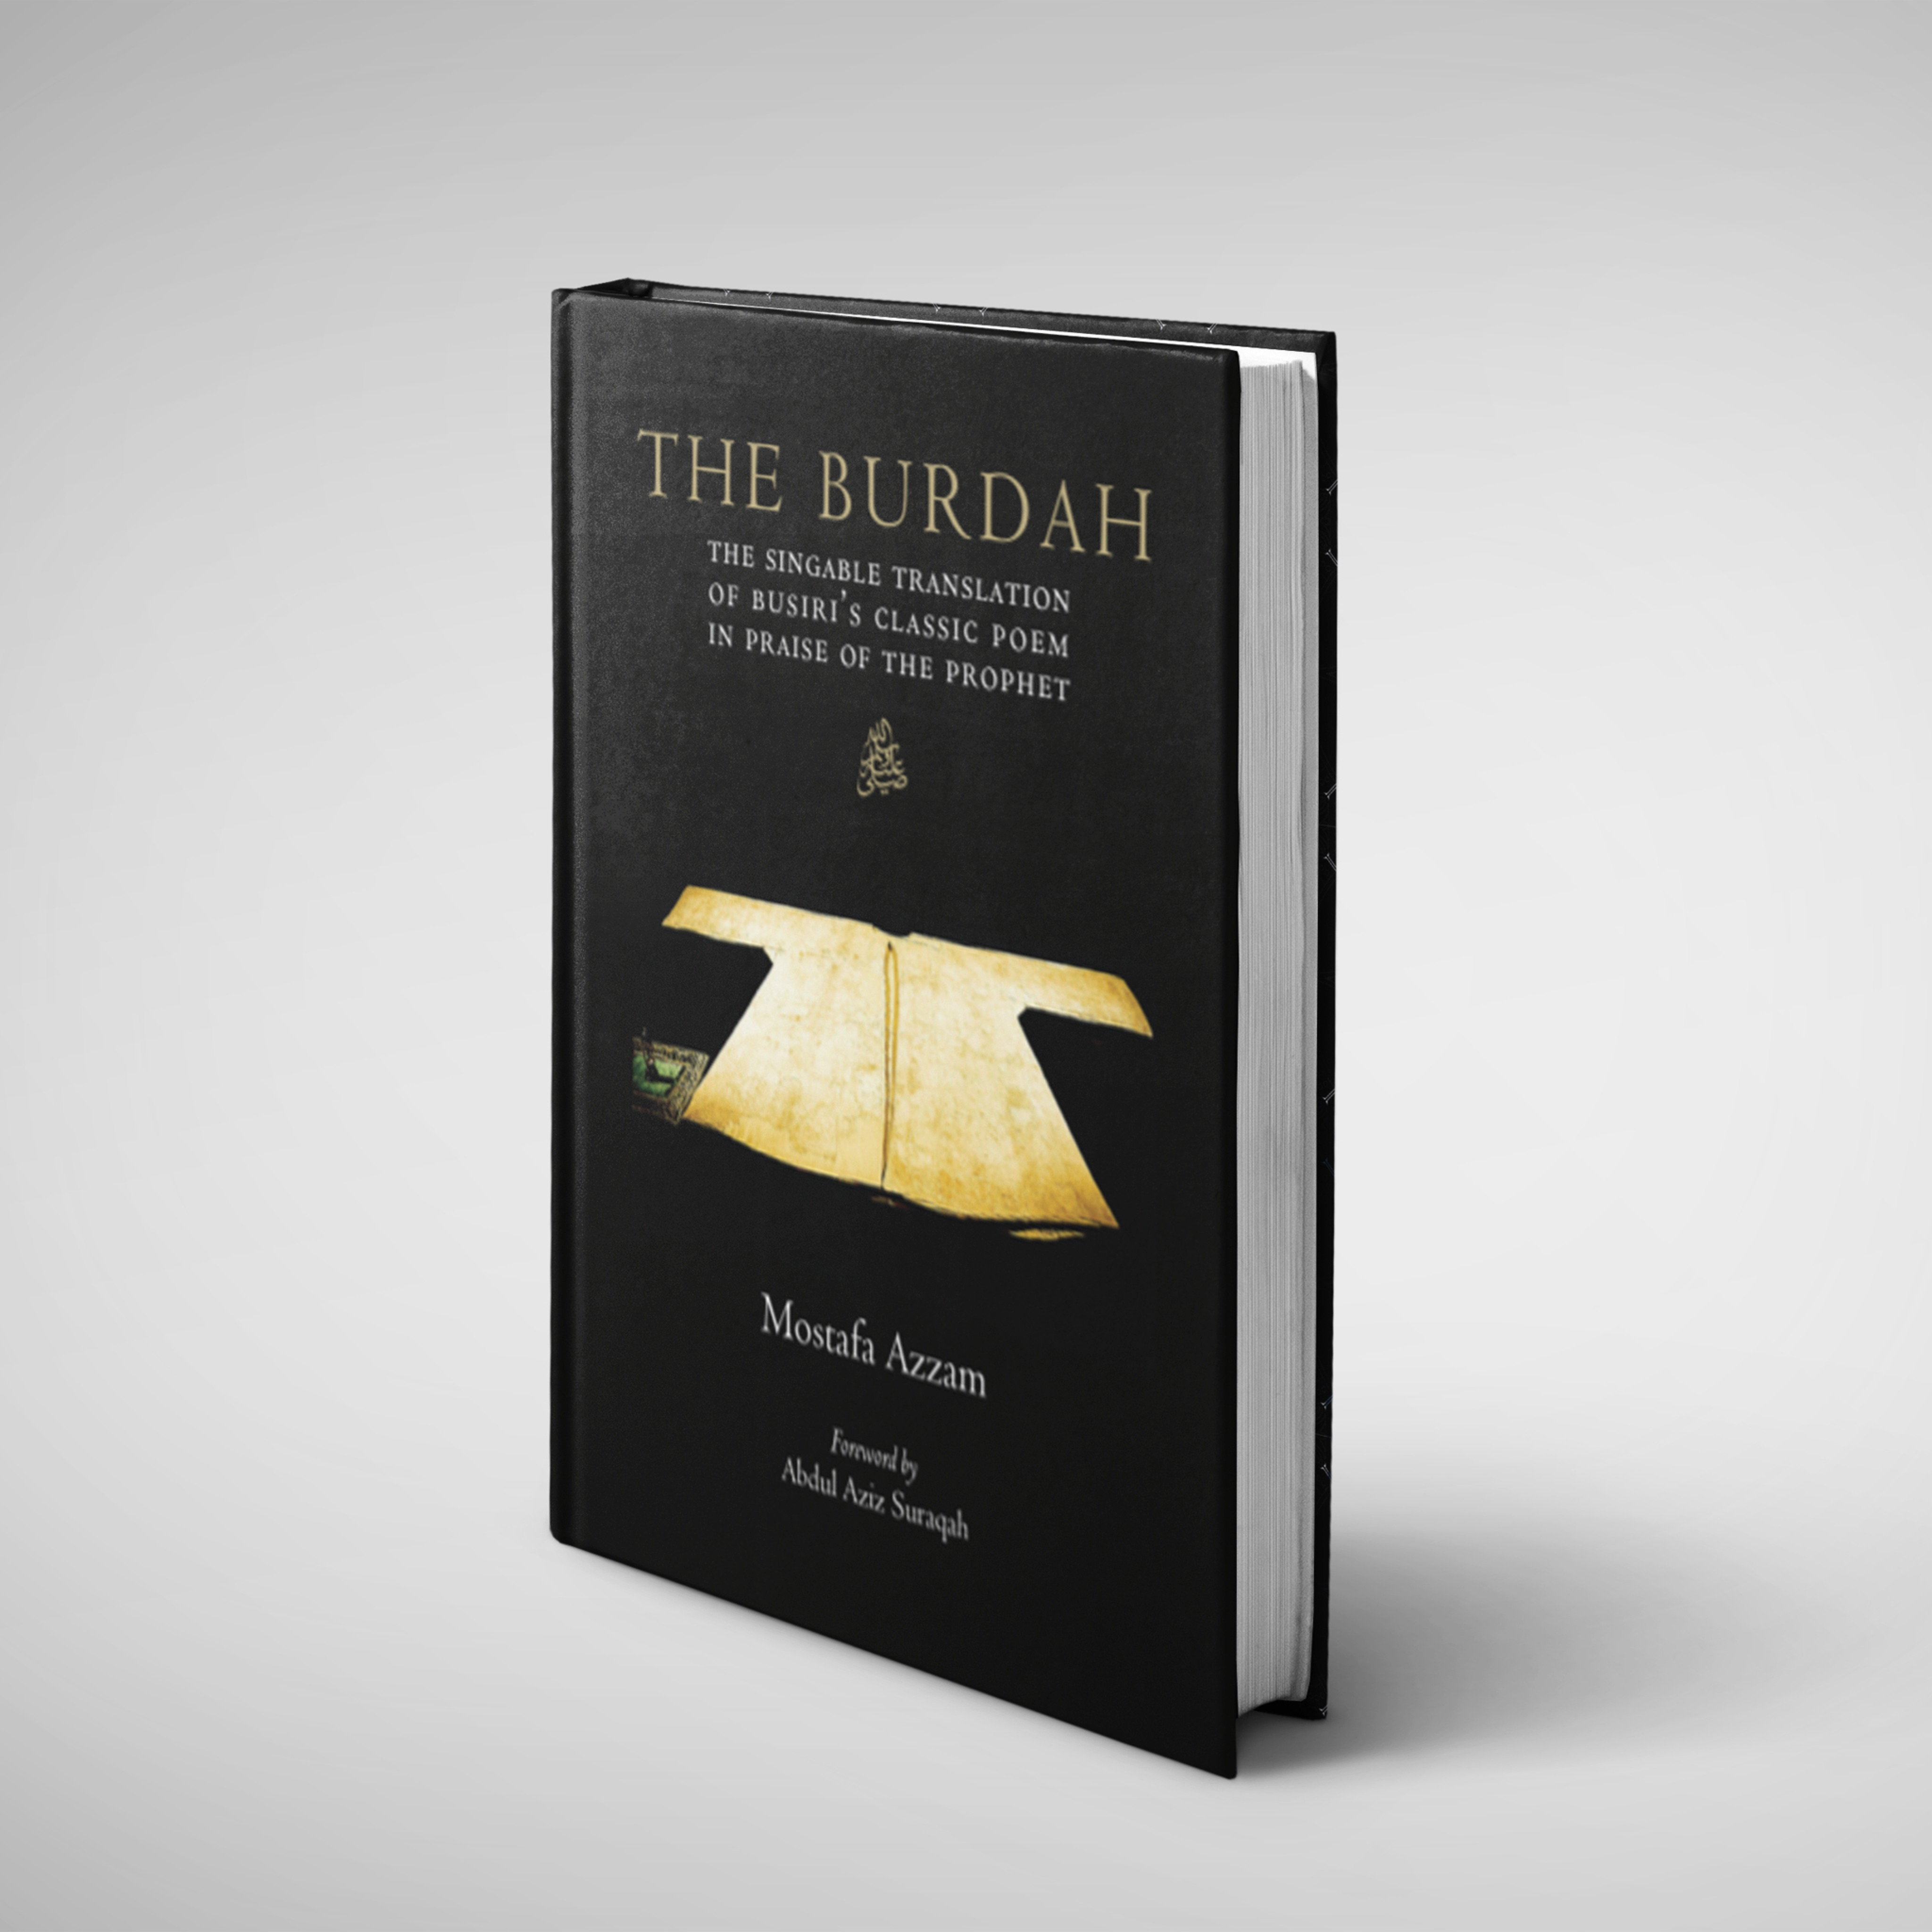 The Burdah: The Singable Translation of Busiri's Classic Poem in Praise of the Prophet ﷺ